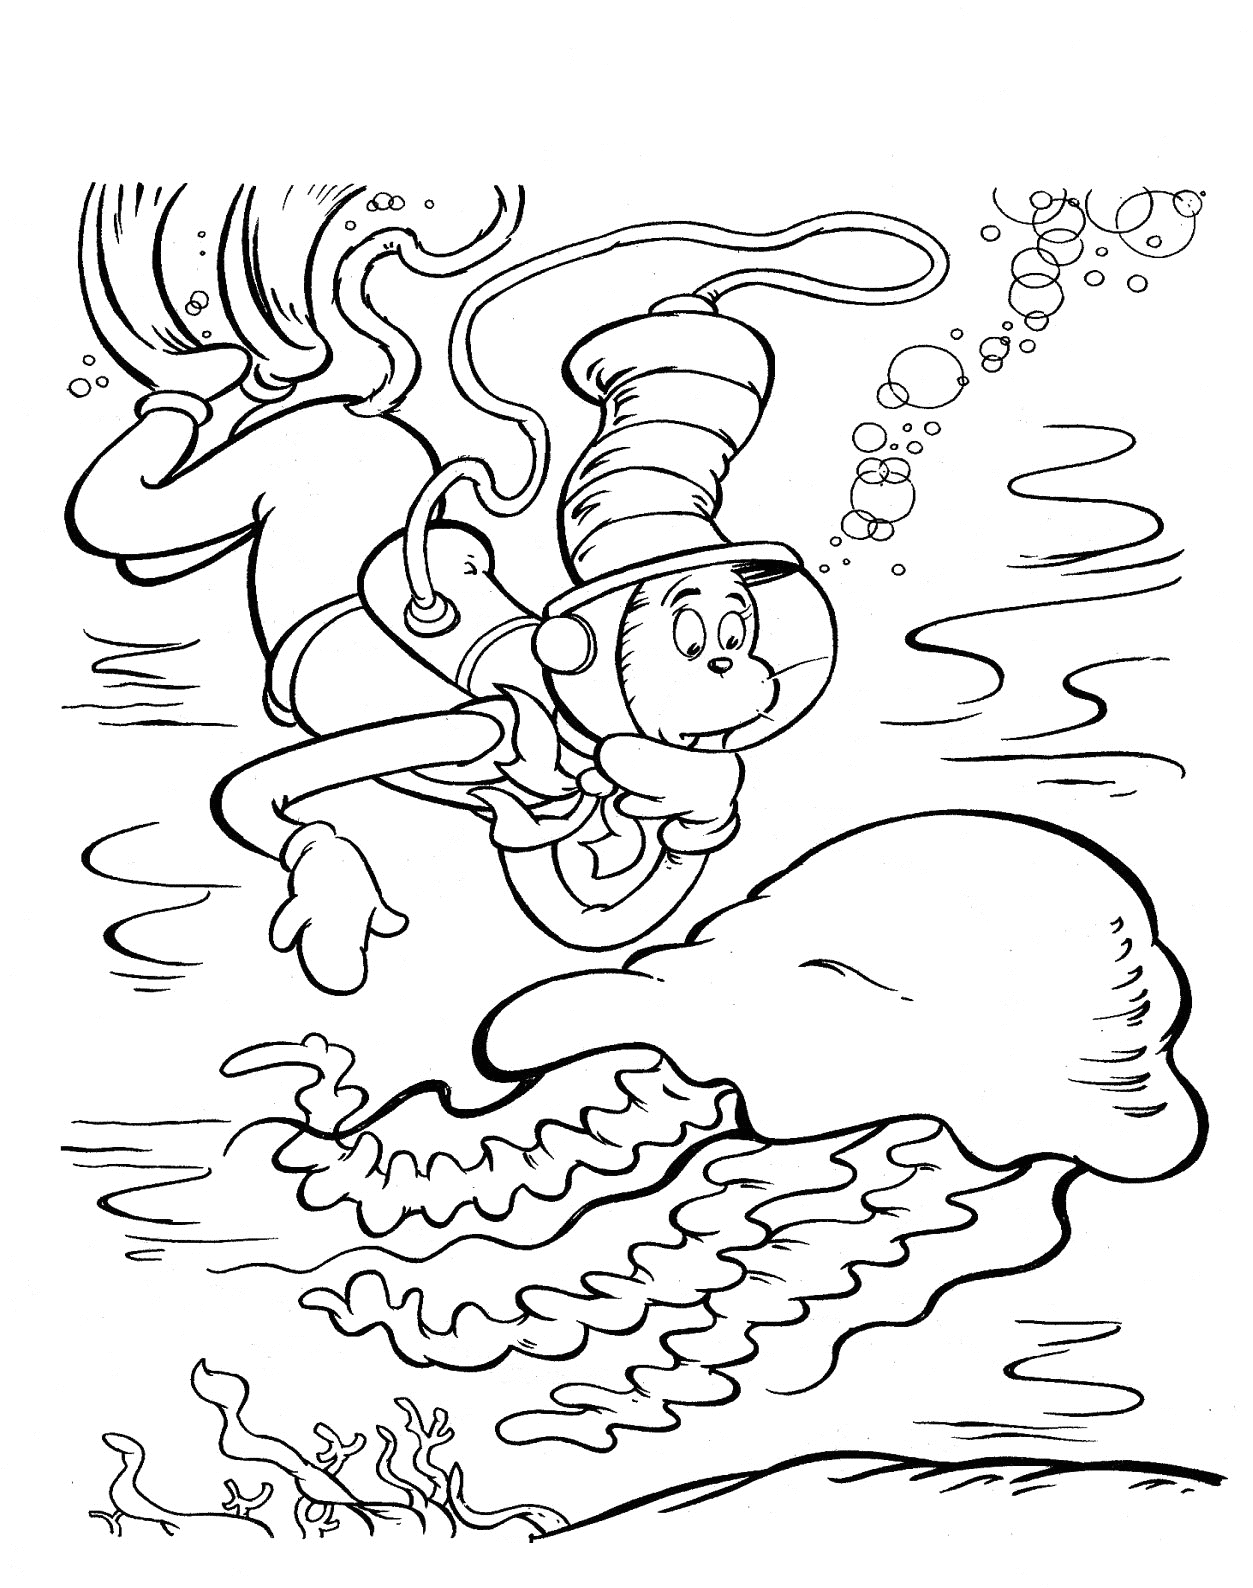 The Cat In the Hat Coloring Pages Free Free Printable Cat In the Hat Coloring Pages for Kids